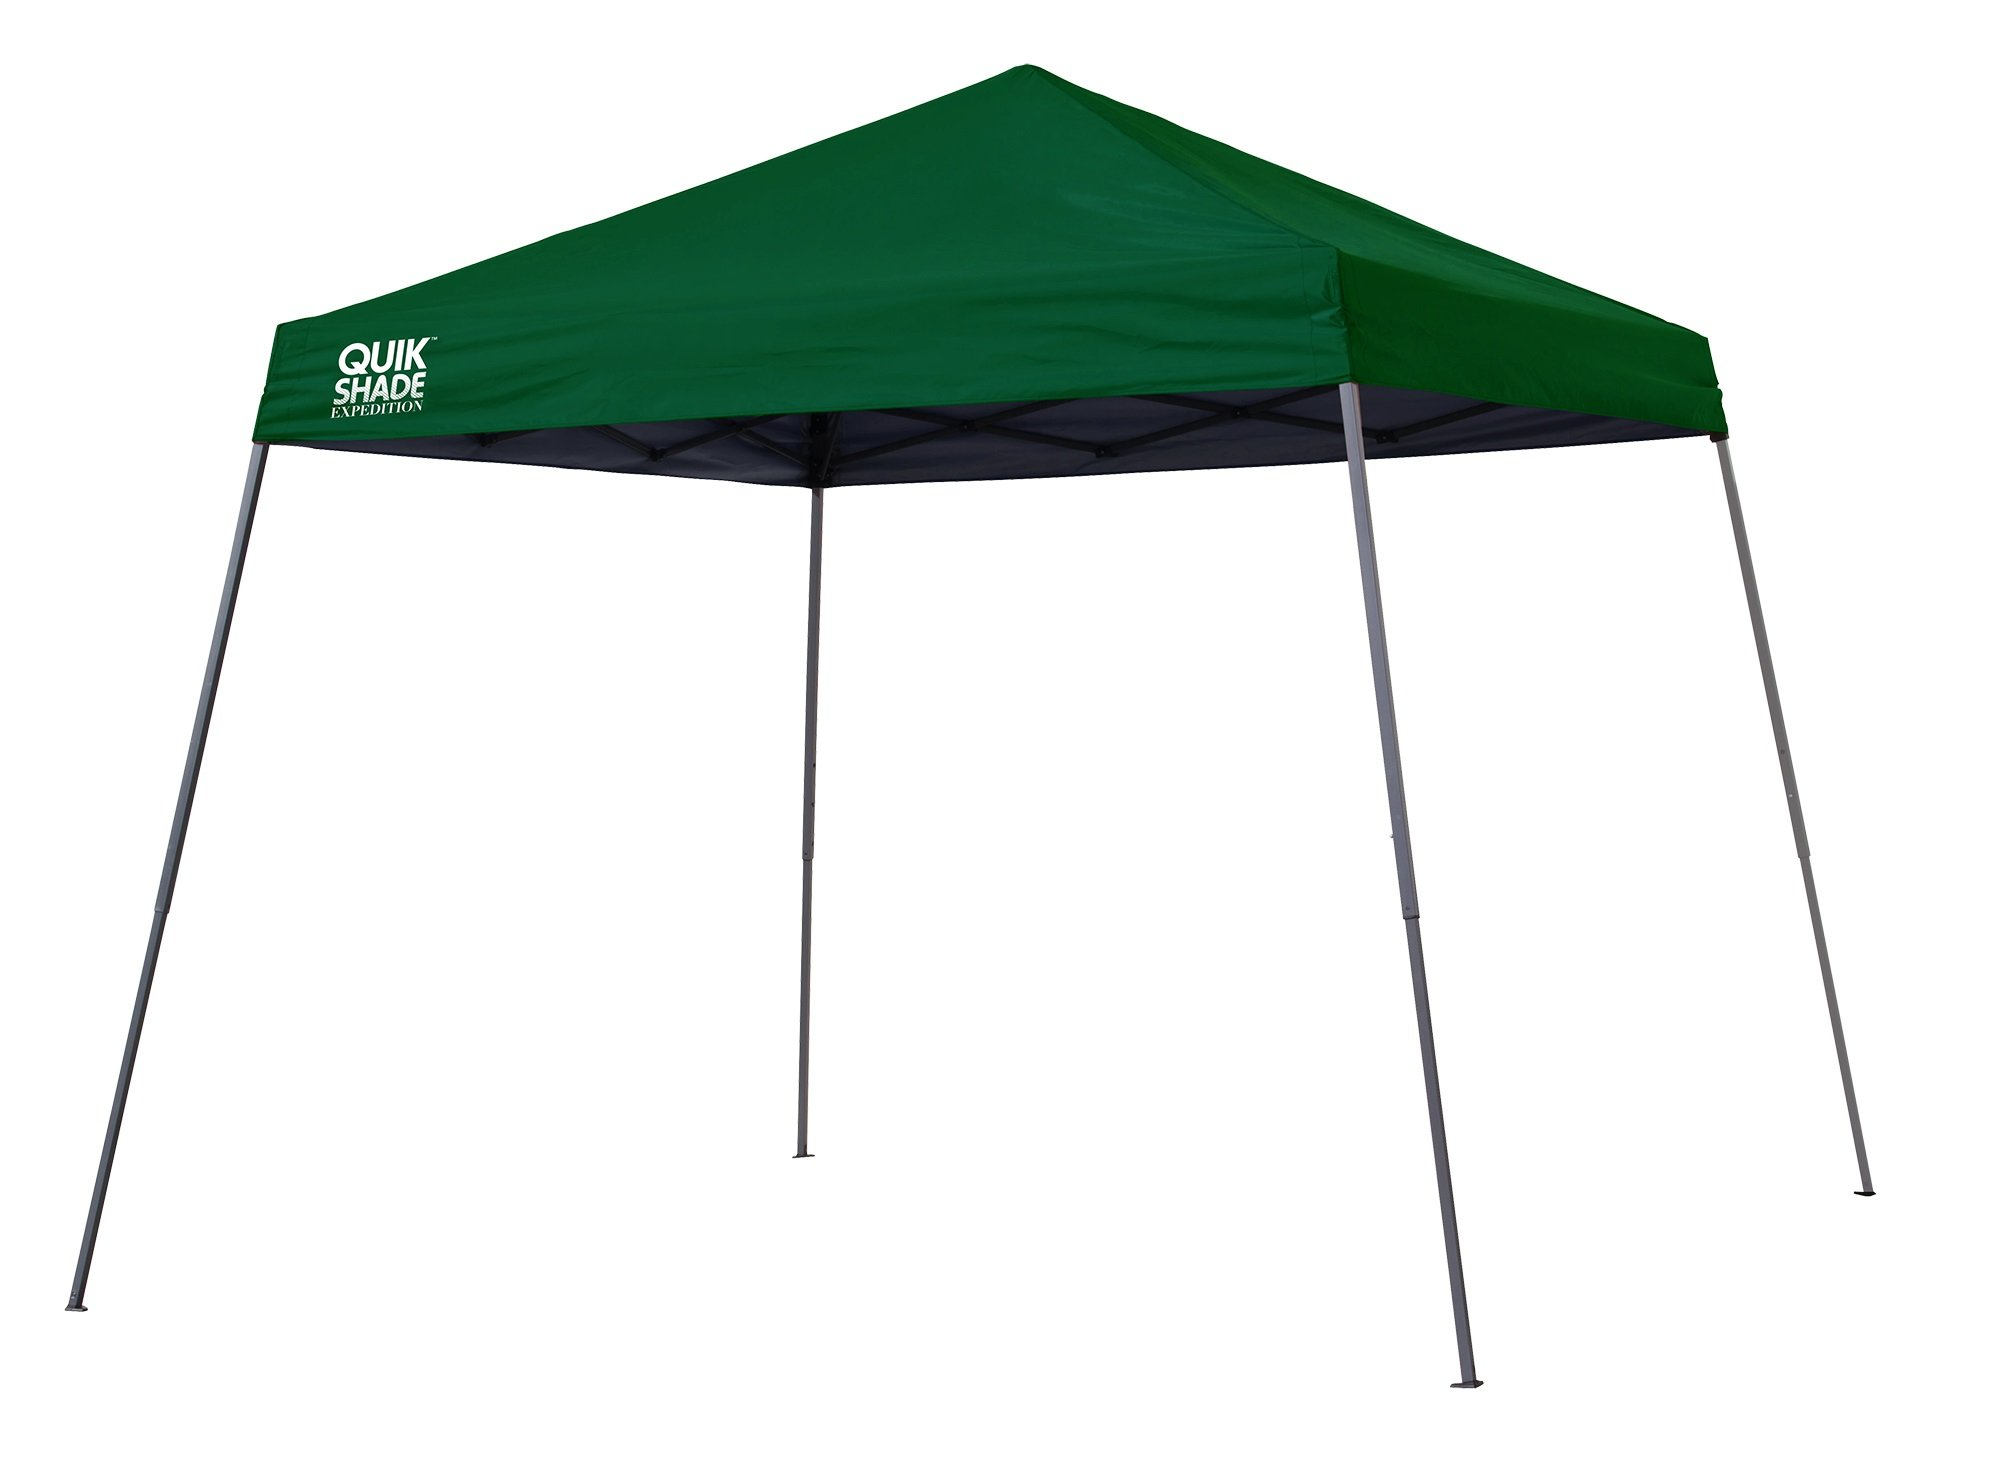 Quik Shade Expedition 12 x 12 ft. Slant Leg Canopy, Green by Quik Shade